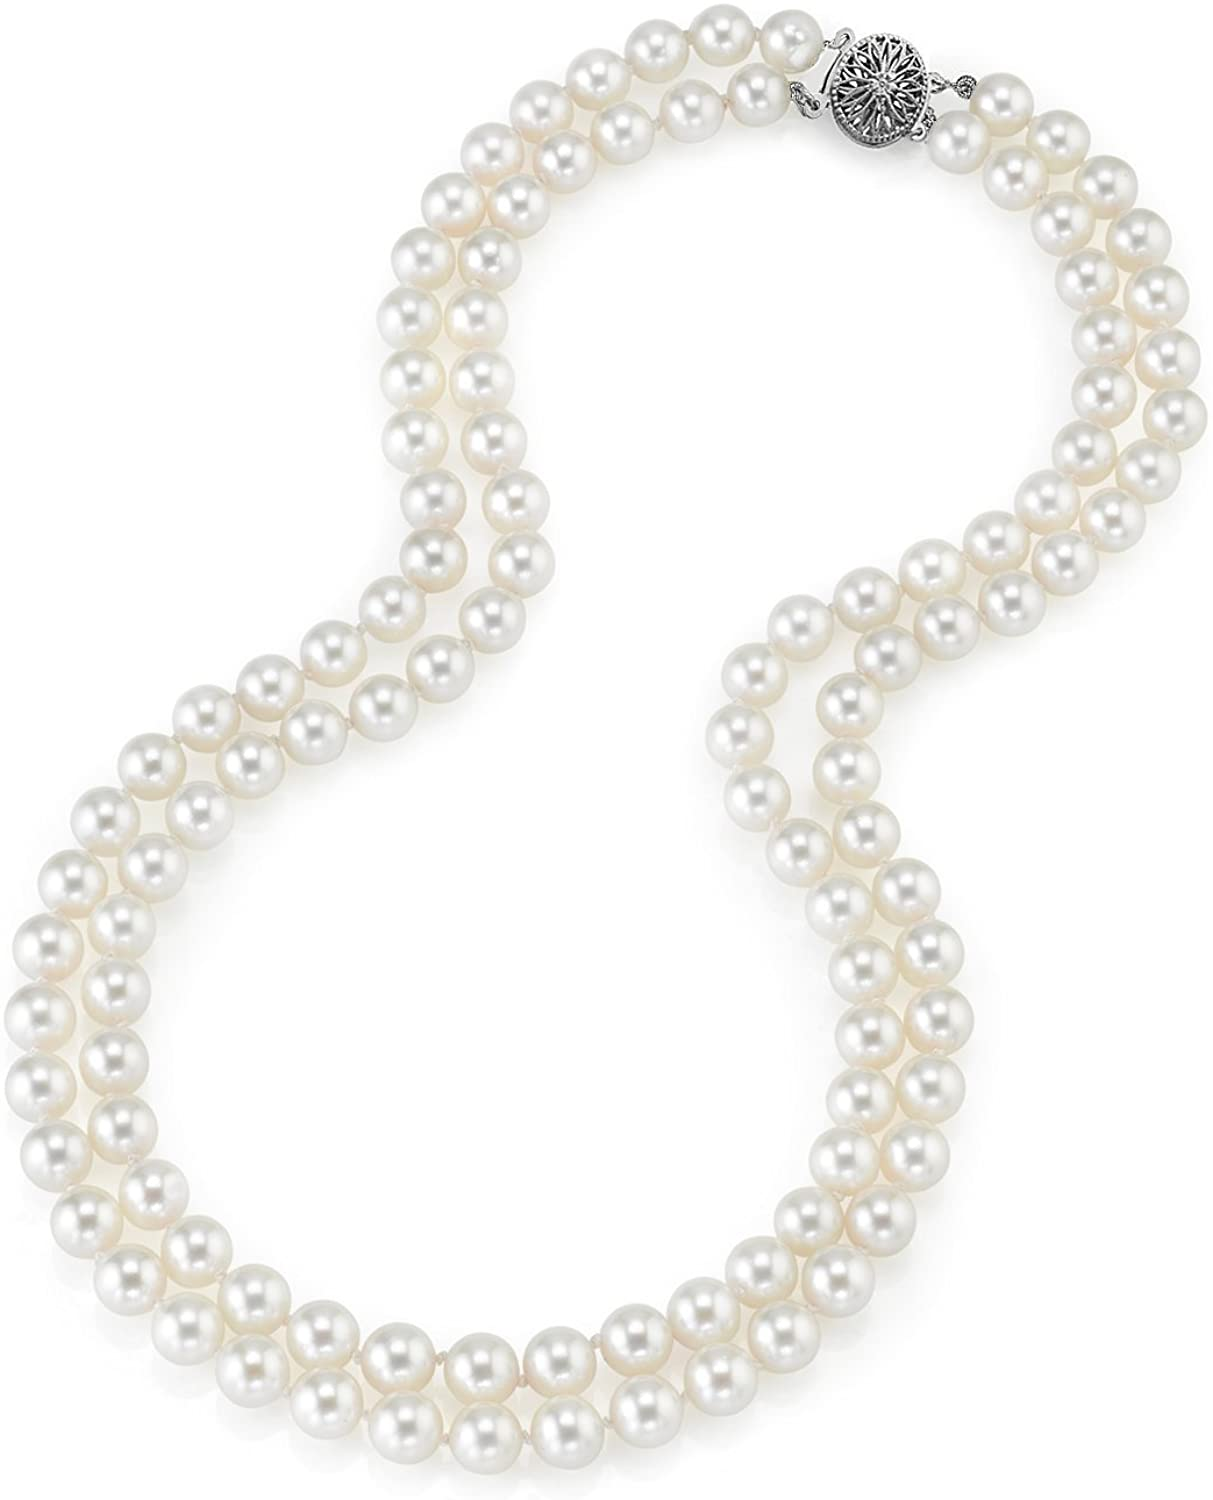 THE PEARL SOURCE 14K Gold 8.0-8.5mm AAA Quality Round Genuine White Double Japanese Akoya Saltwater Cultured Pearl Necklace in 17-18